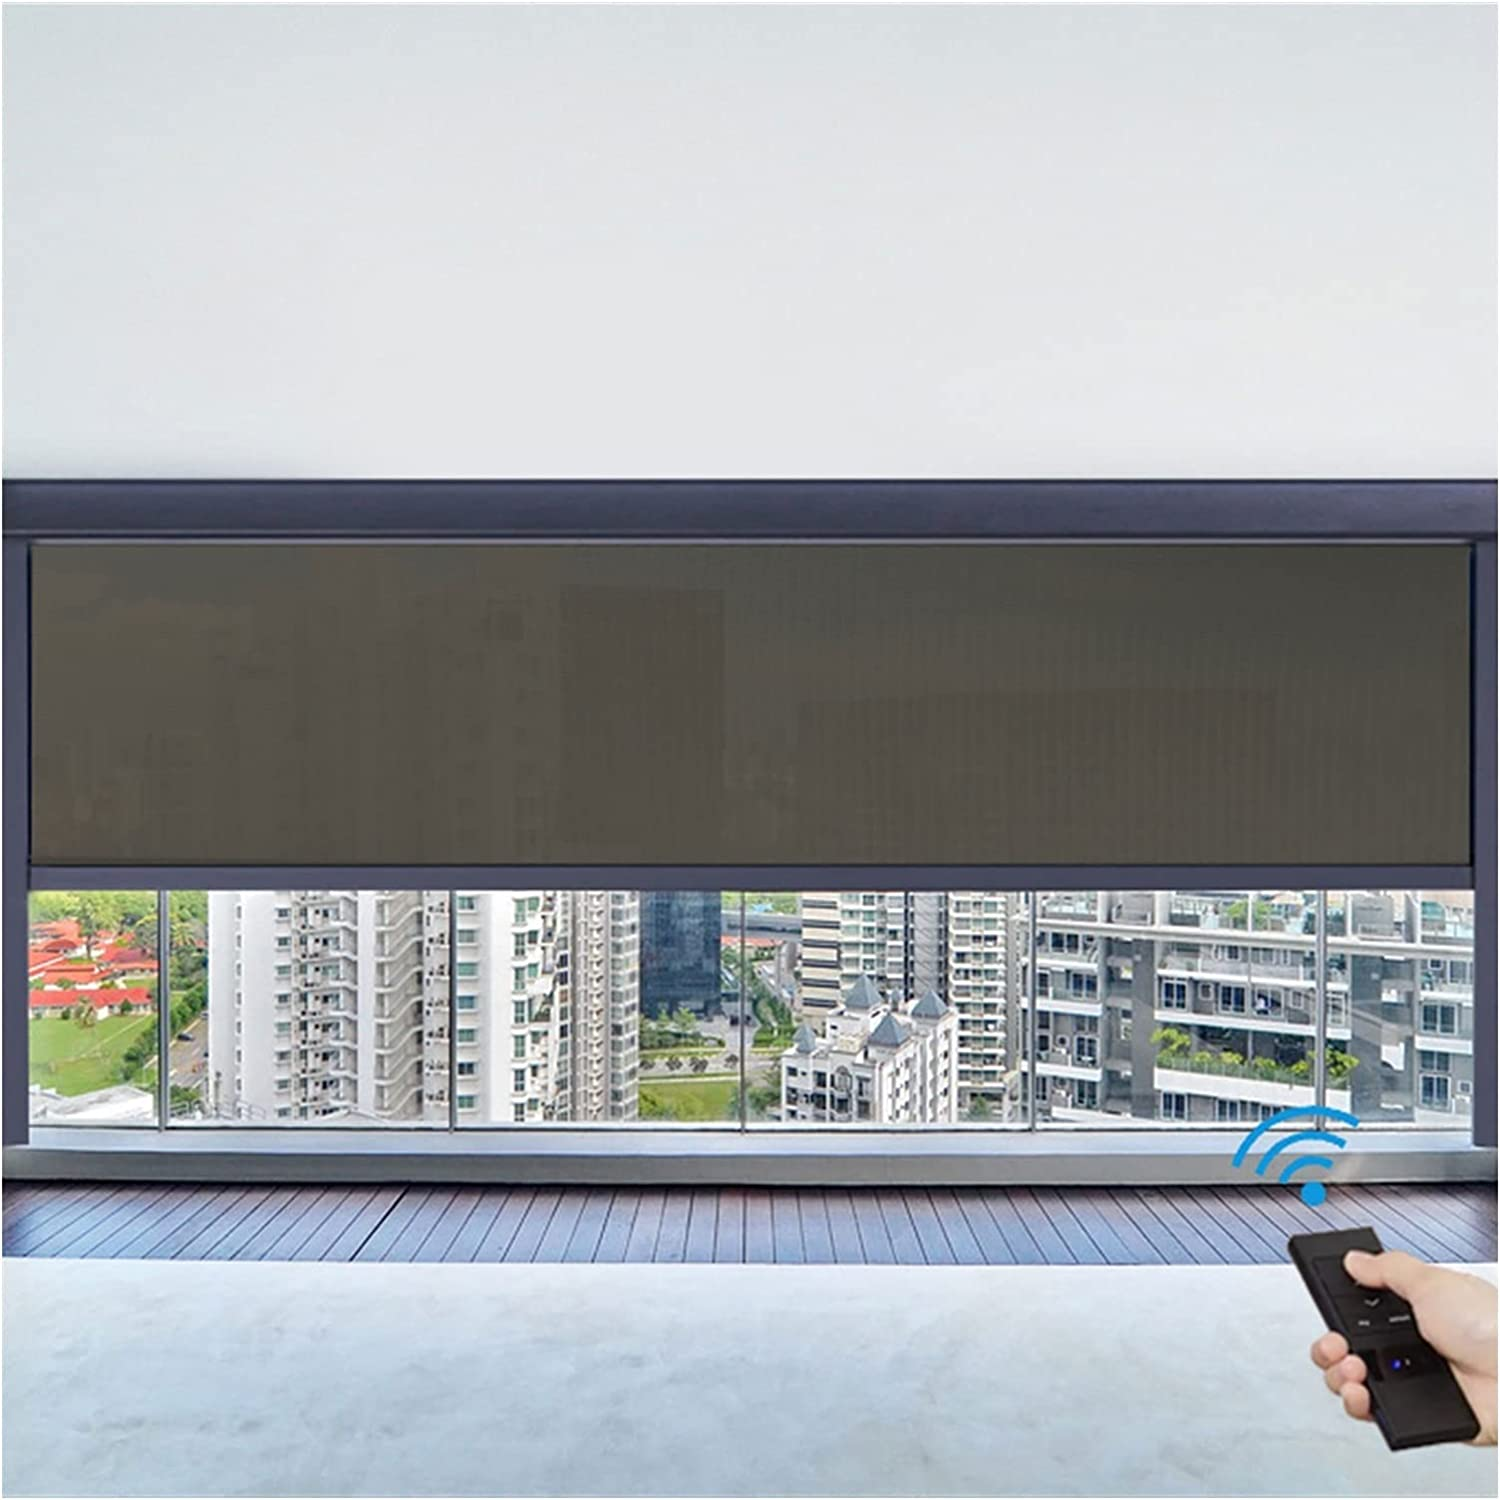 YI0877CHANG Blinds for Window with Baltimore Mall Selling Motorized Roller Remot